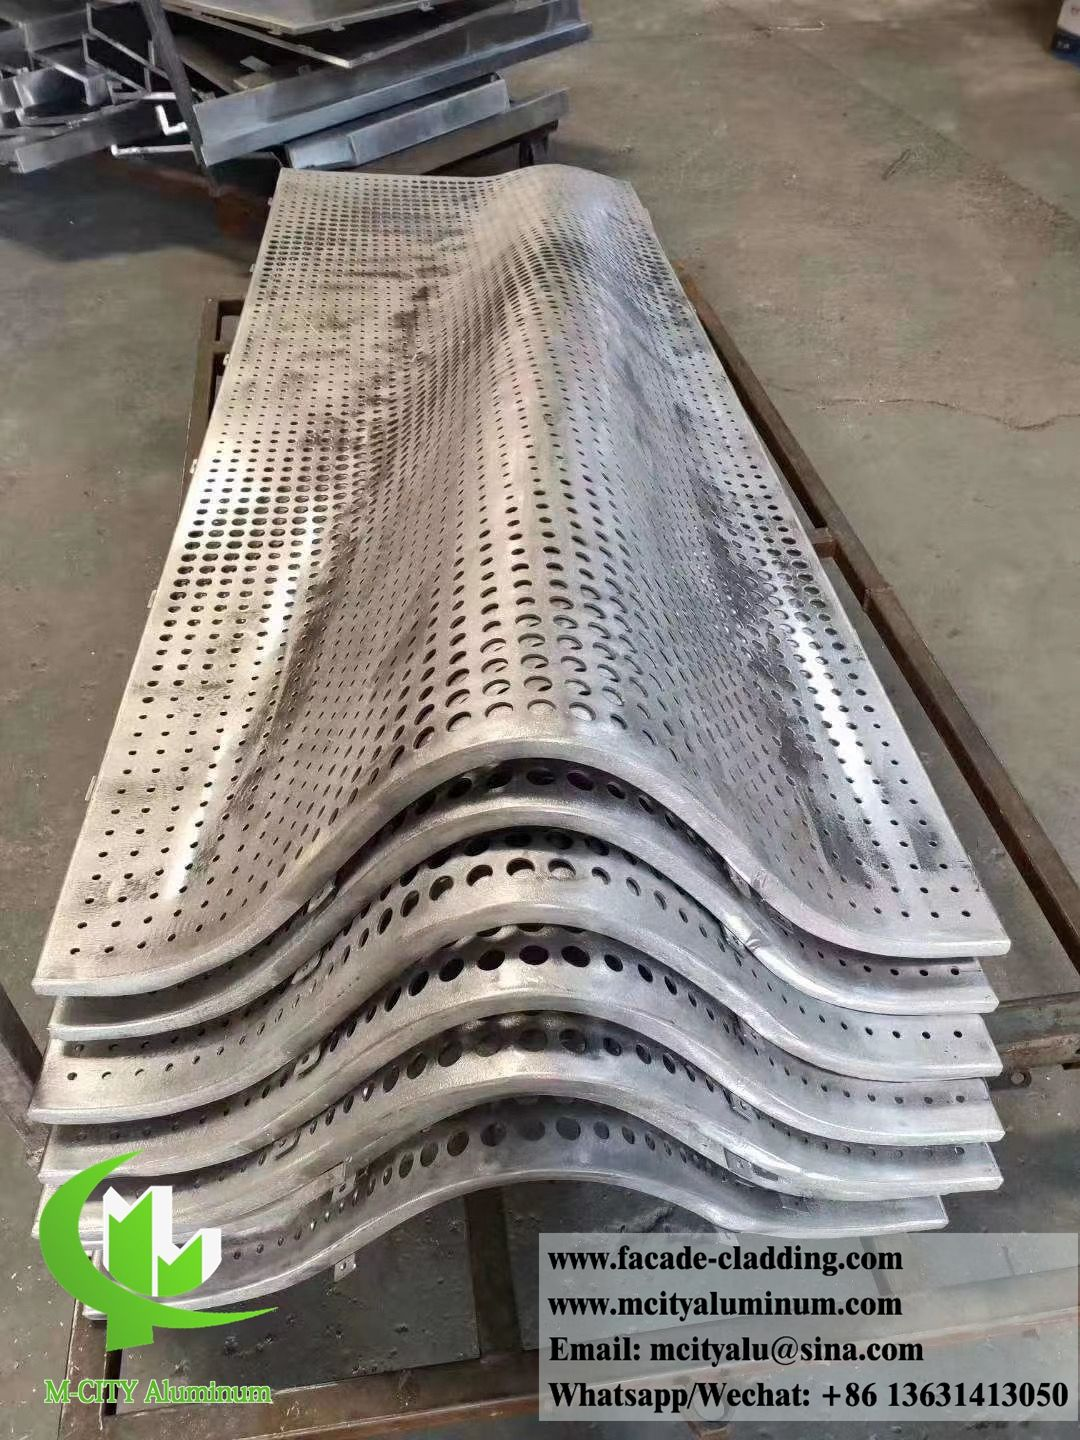 Curved Perforated Metal Cladding Metal Facades Round Holes In 2020 Metal Cladding Aluminium Cladding Perforated Metal